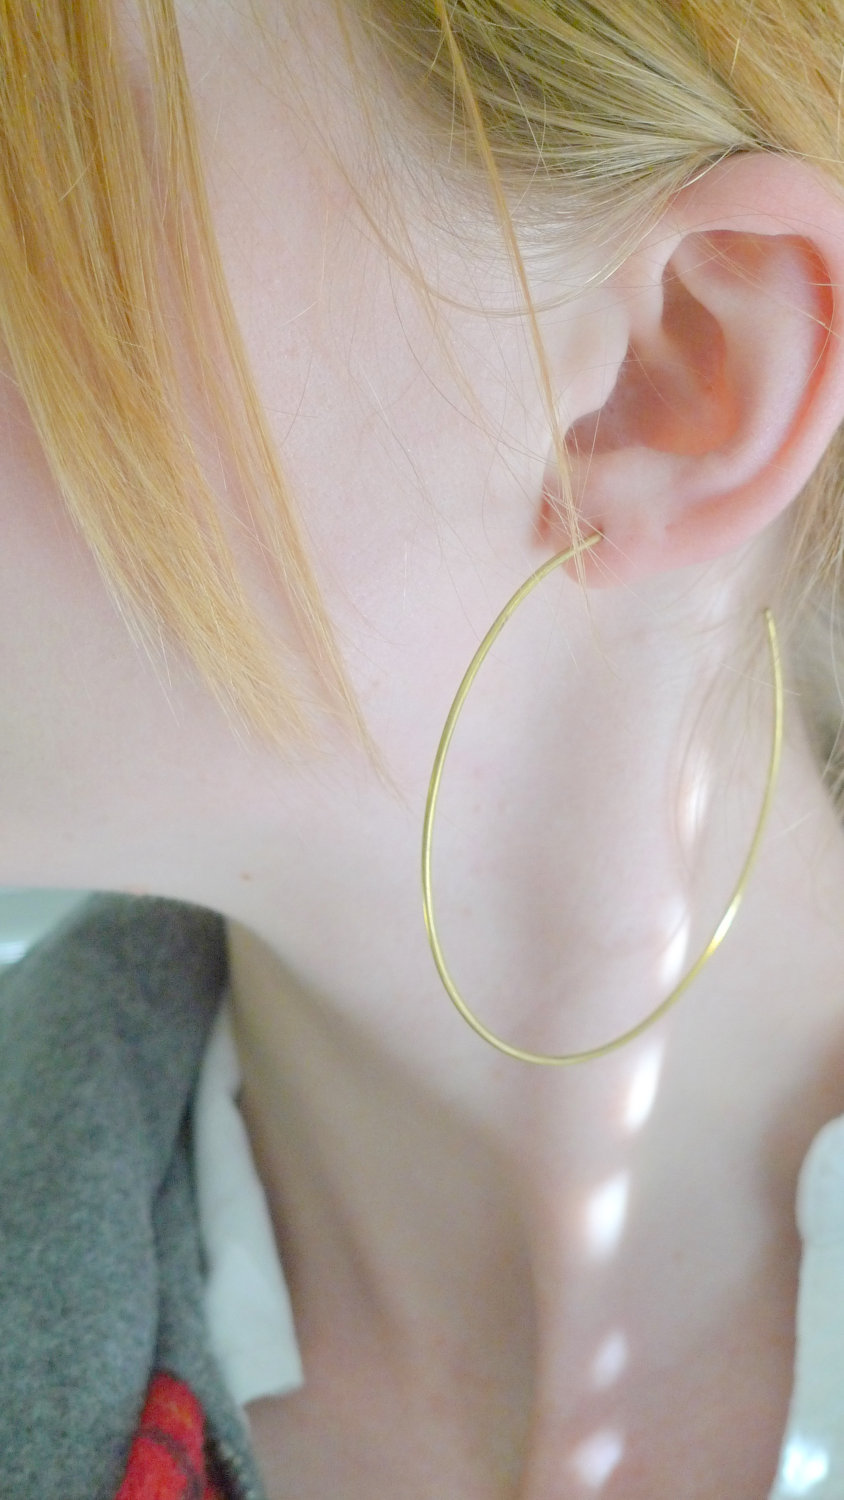 Brass and Sterling Silver Hoop Earrings Extra Large Open Hoops Minimal Simple Jewelry